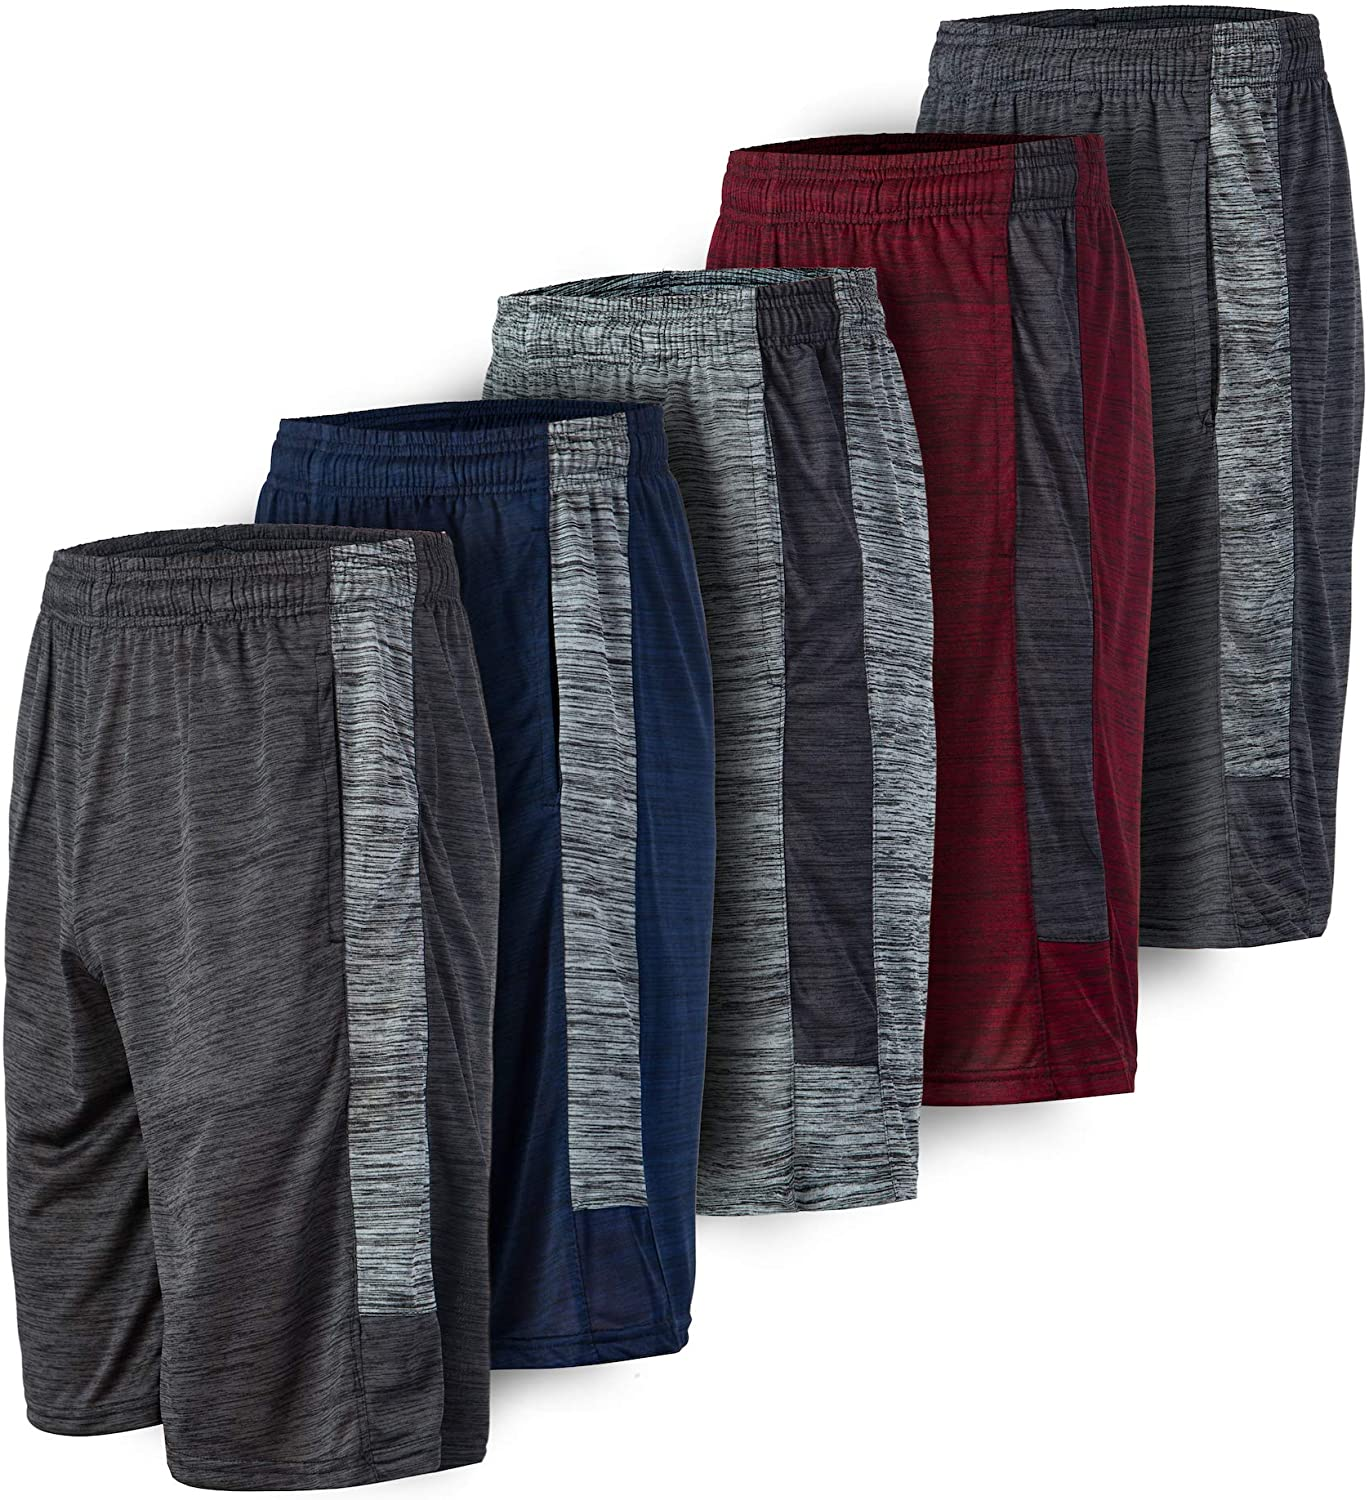 Mens Basketball Shorts - Athletic Active Sports Max Phoenix Mall 63% OFF with Gym P Short